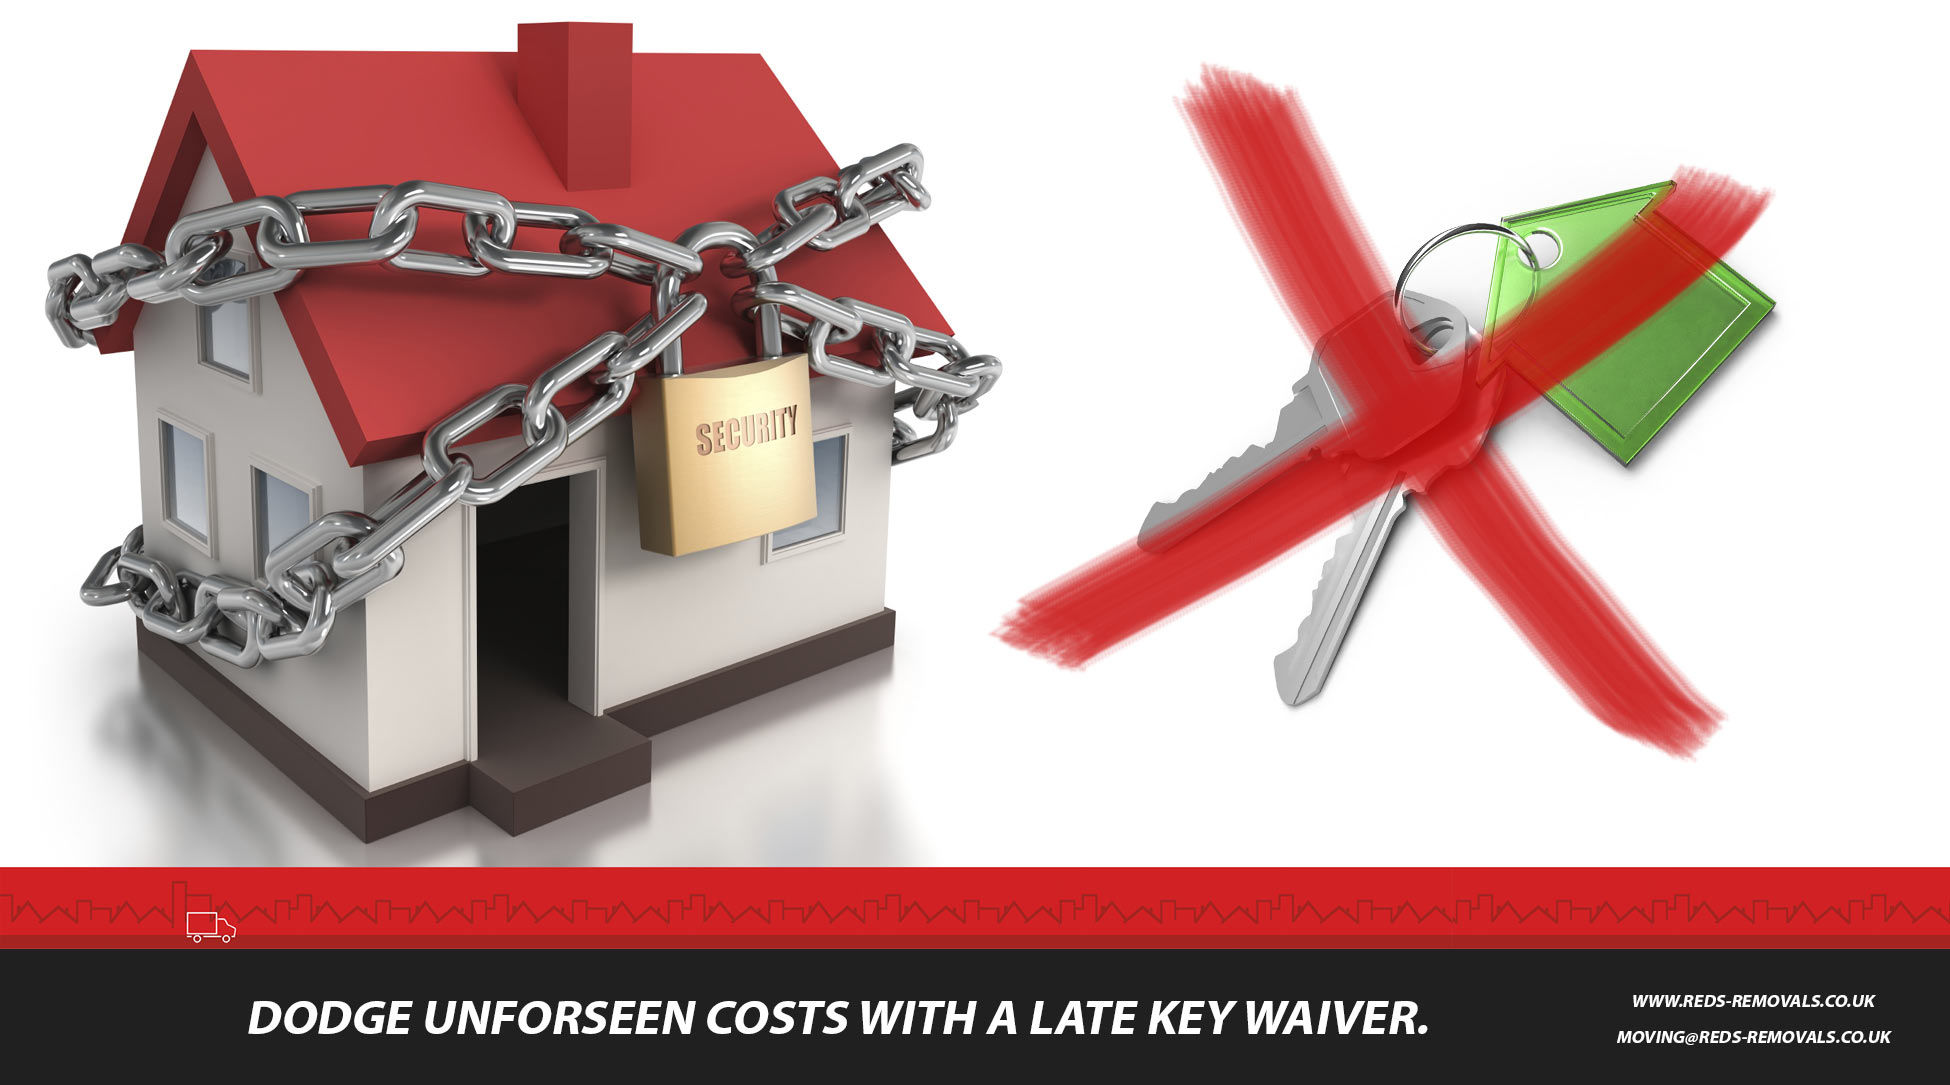 Optional late key waiver with your home move to dodge any unforeseen costs due to delays on moving day.